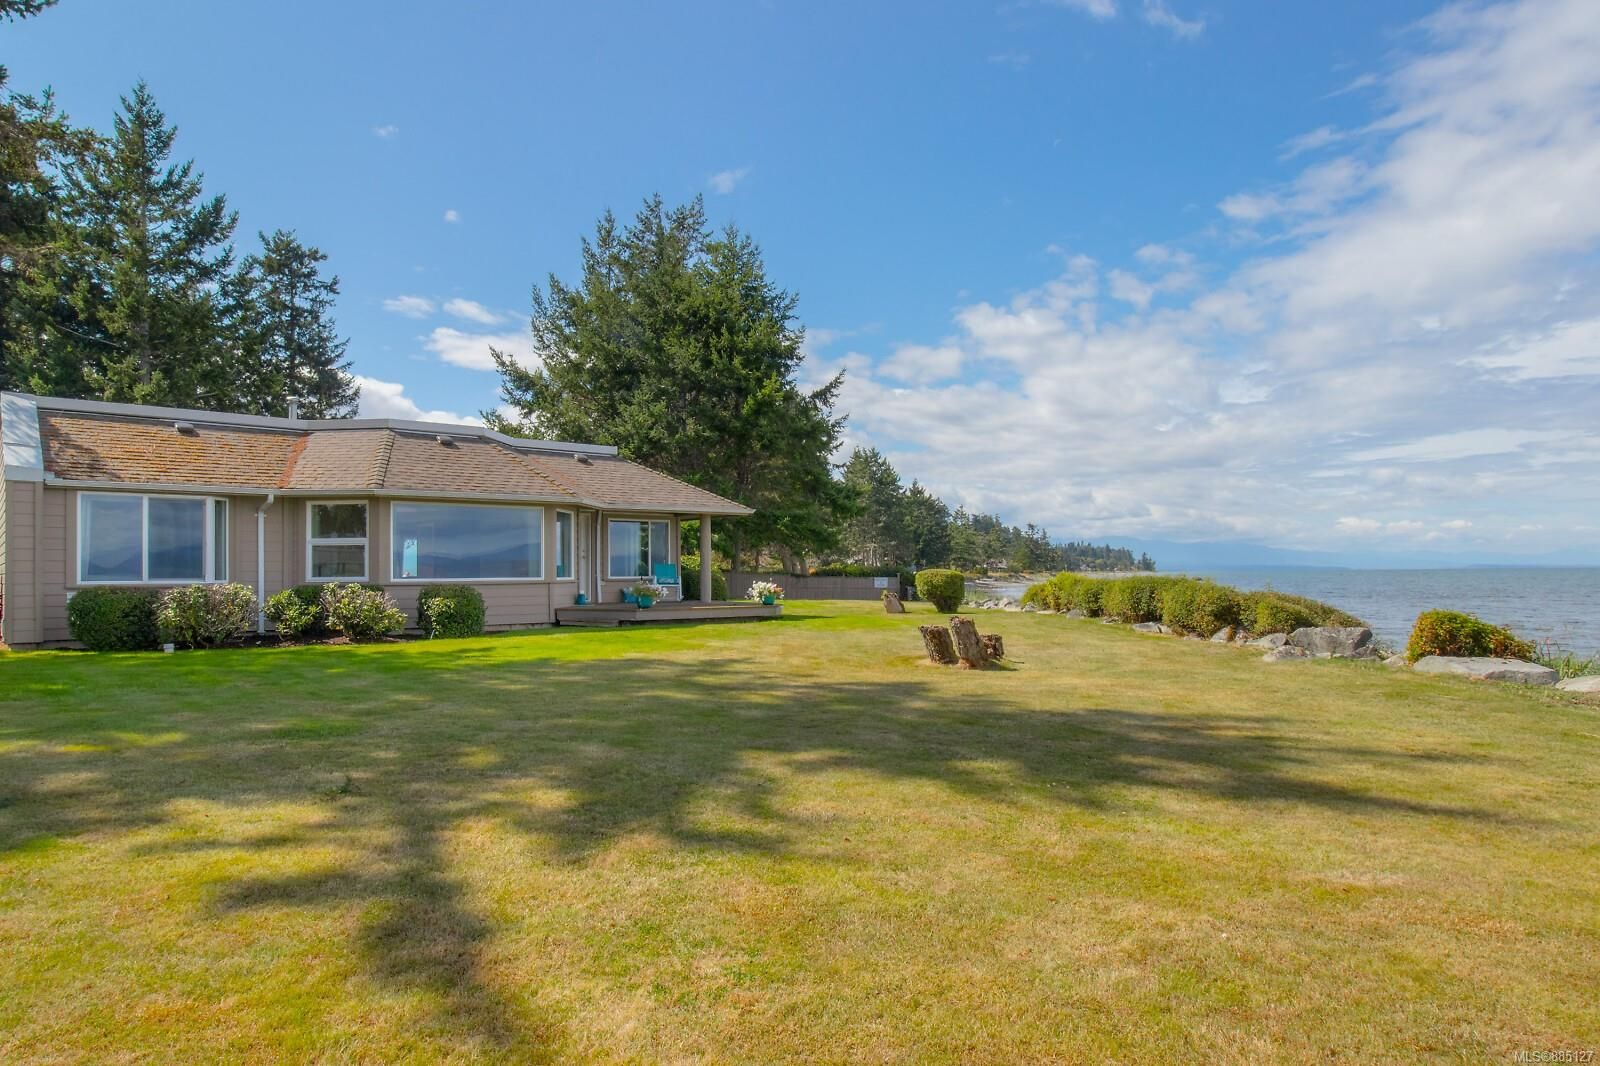 Photo 45: Photos: 26 529 Johnstone Rd in : PQ French Creek Row/Townhouse for sale (Parksville/Qualicum)  : MLS®# 885127